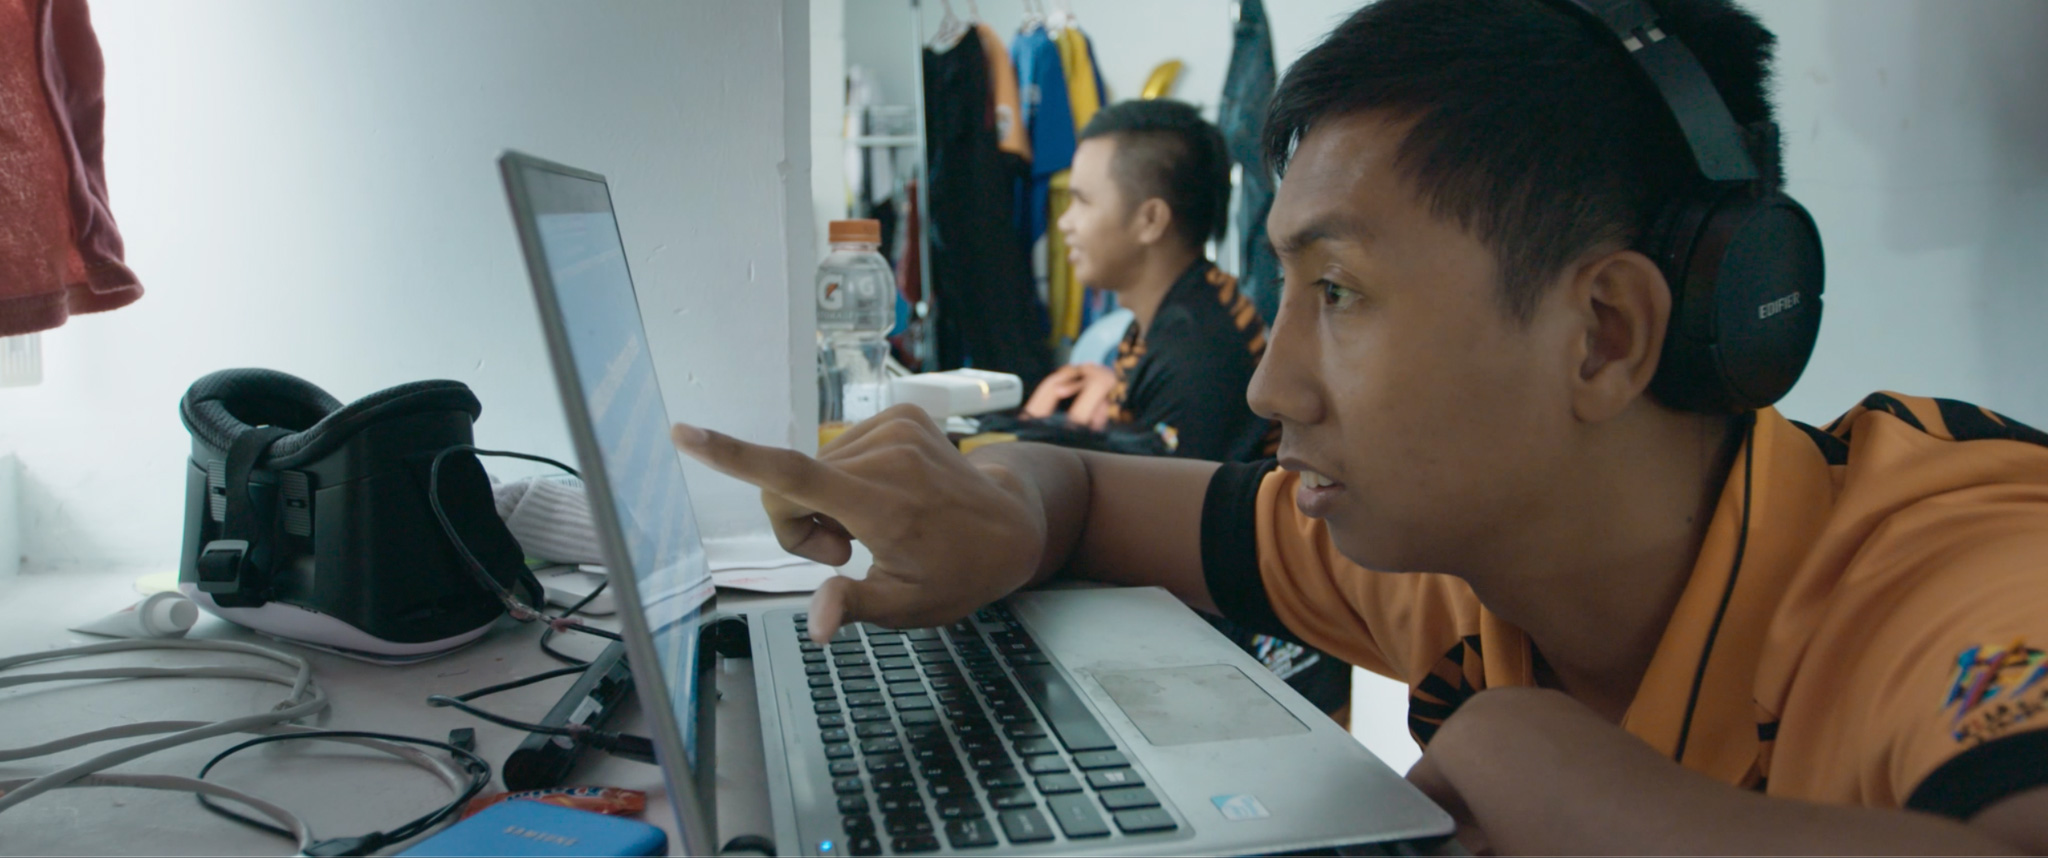 Blind footballer Asri is using his computer, assisted by a screen reader.